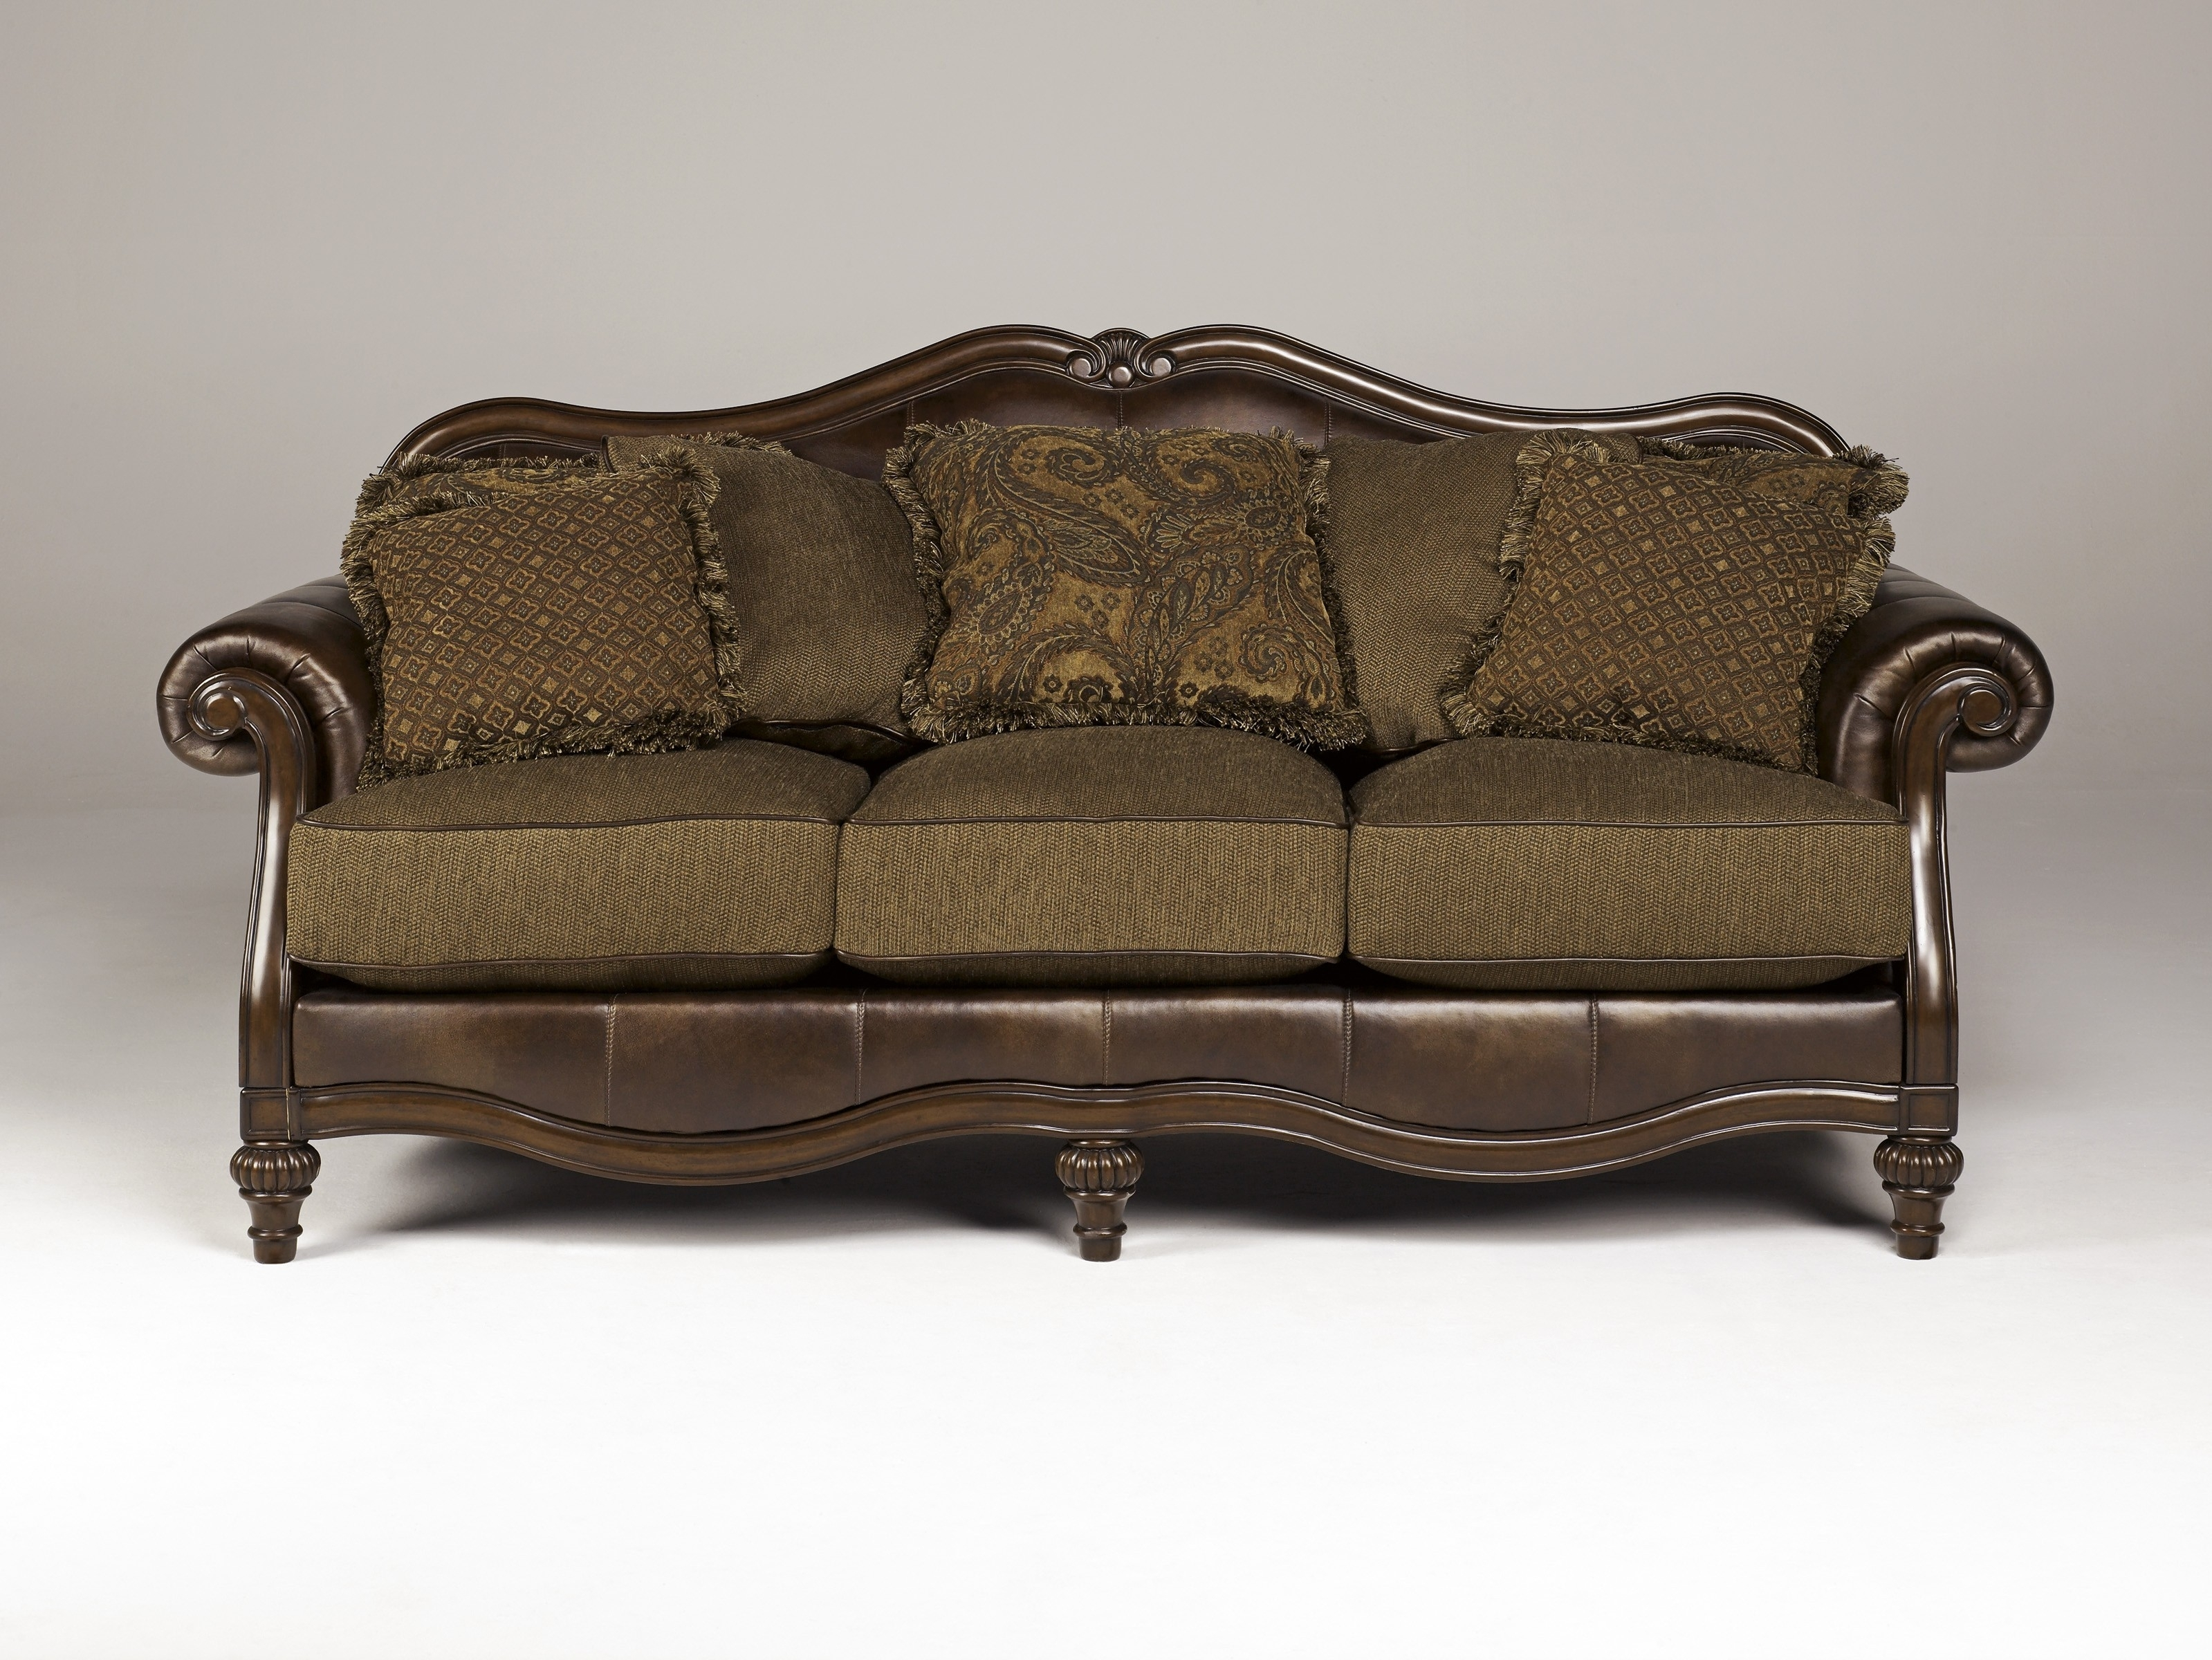 New Ideas Antique Sofas And Chairs With Furniture Living Room For Antique Sofas (Image 8 of 10)